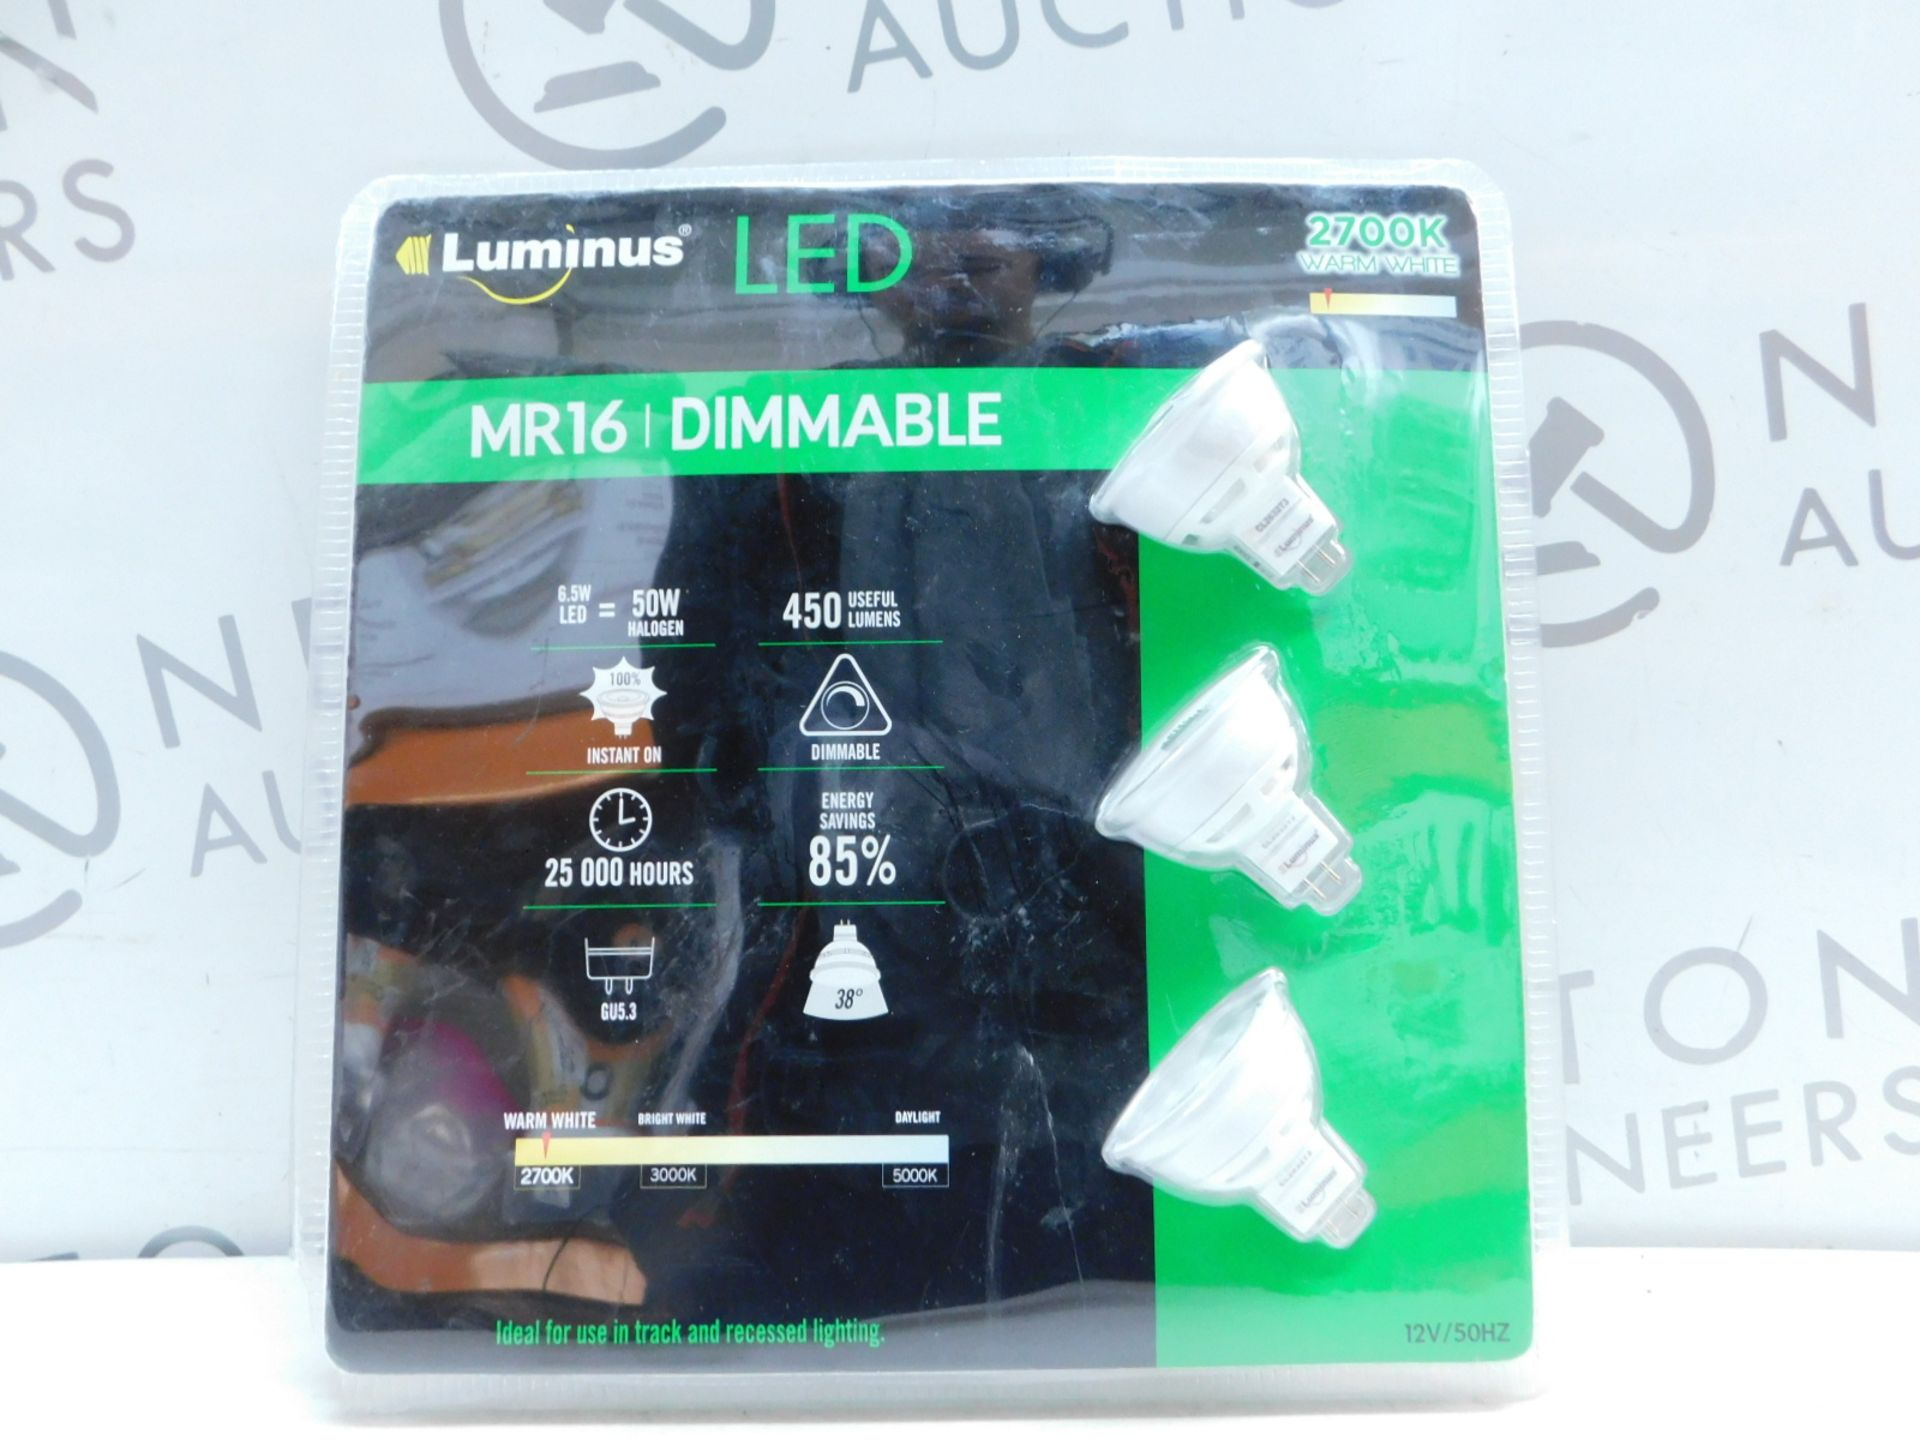 Lot 34 - 1 PACK OF 3 FEIT ELECTRIC MR16 LED DIMMABLE 50W REPLACEMENT BULBS RRP £19.99